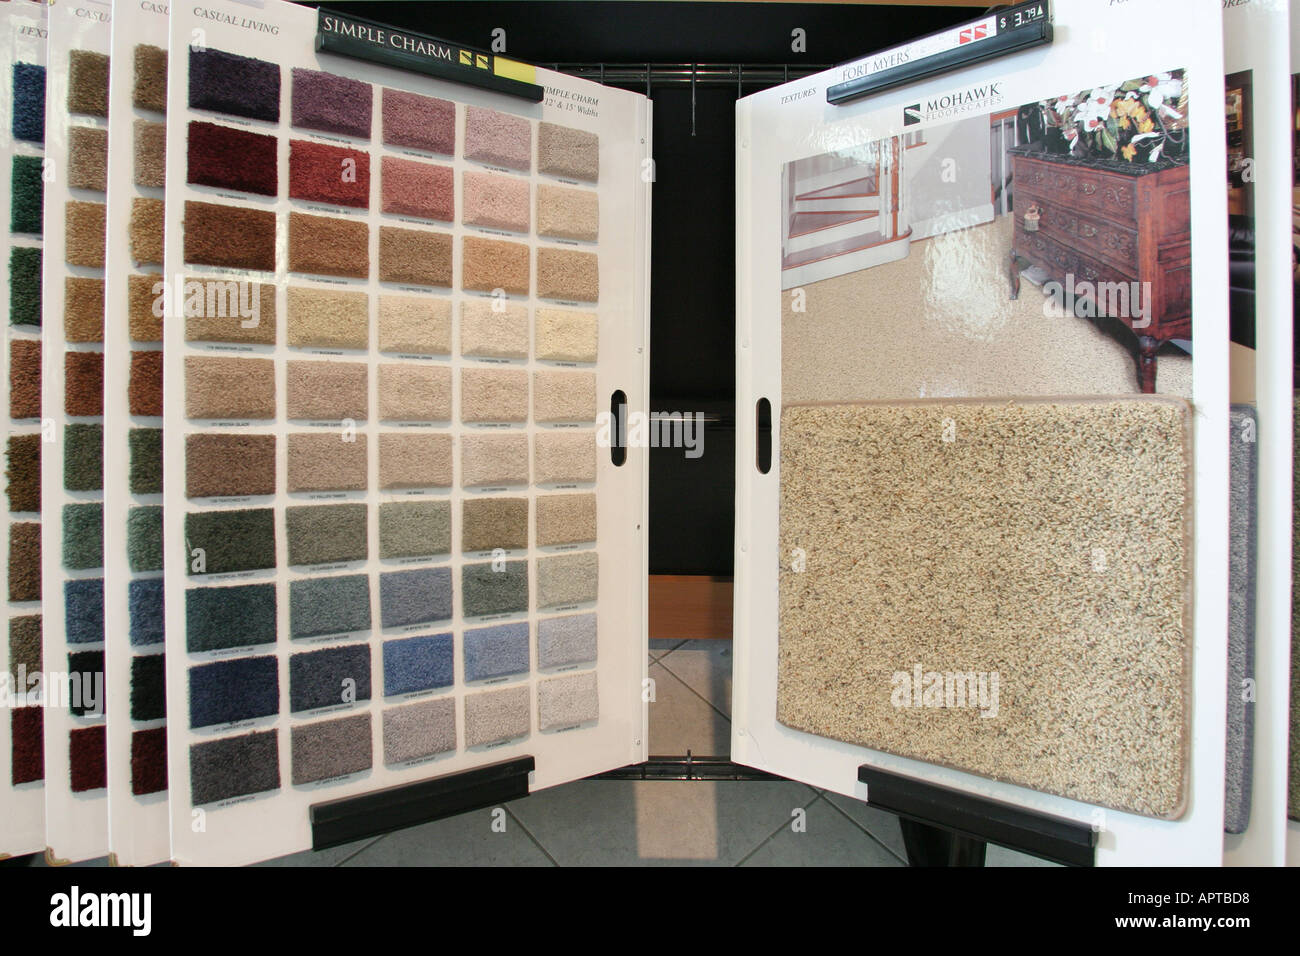 North Miami Florida Dolphin Carpet And Tile Sample Display Colors Choices